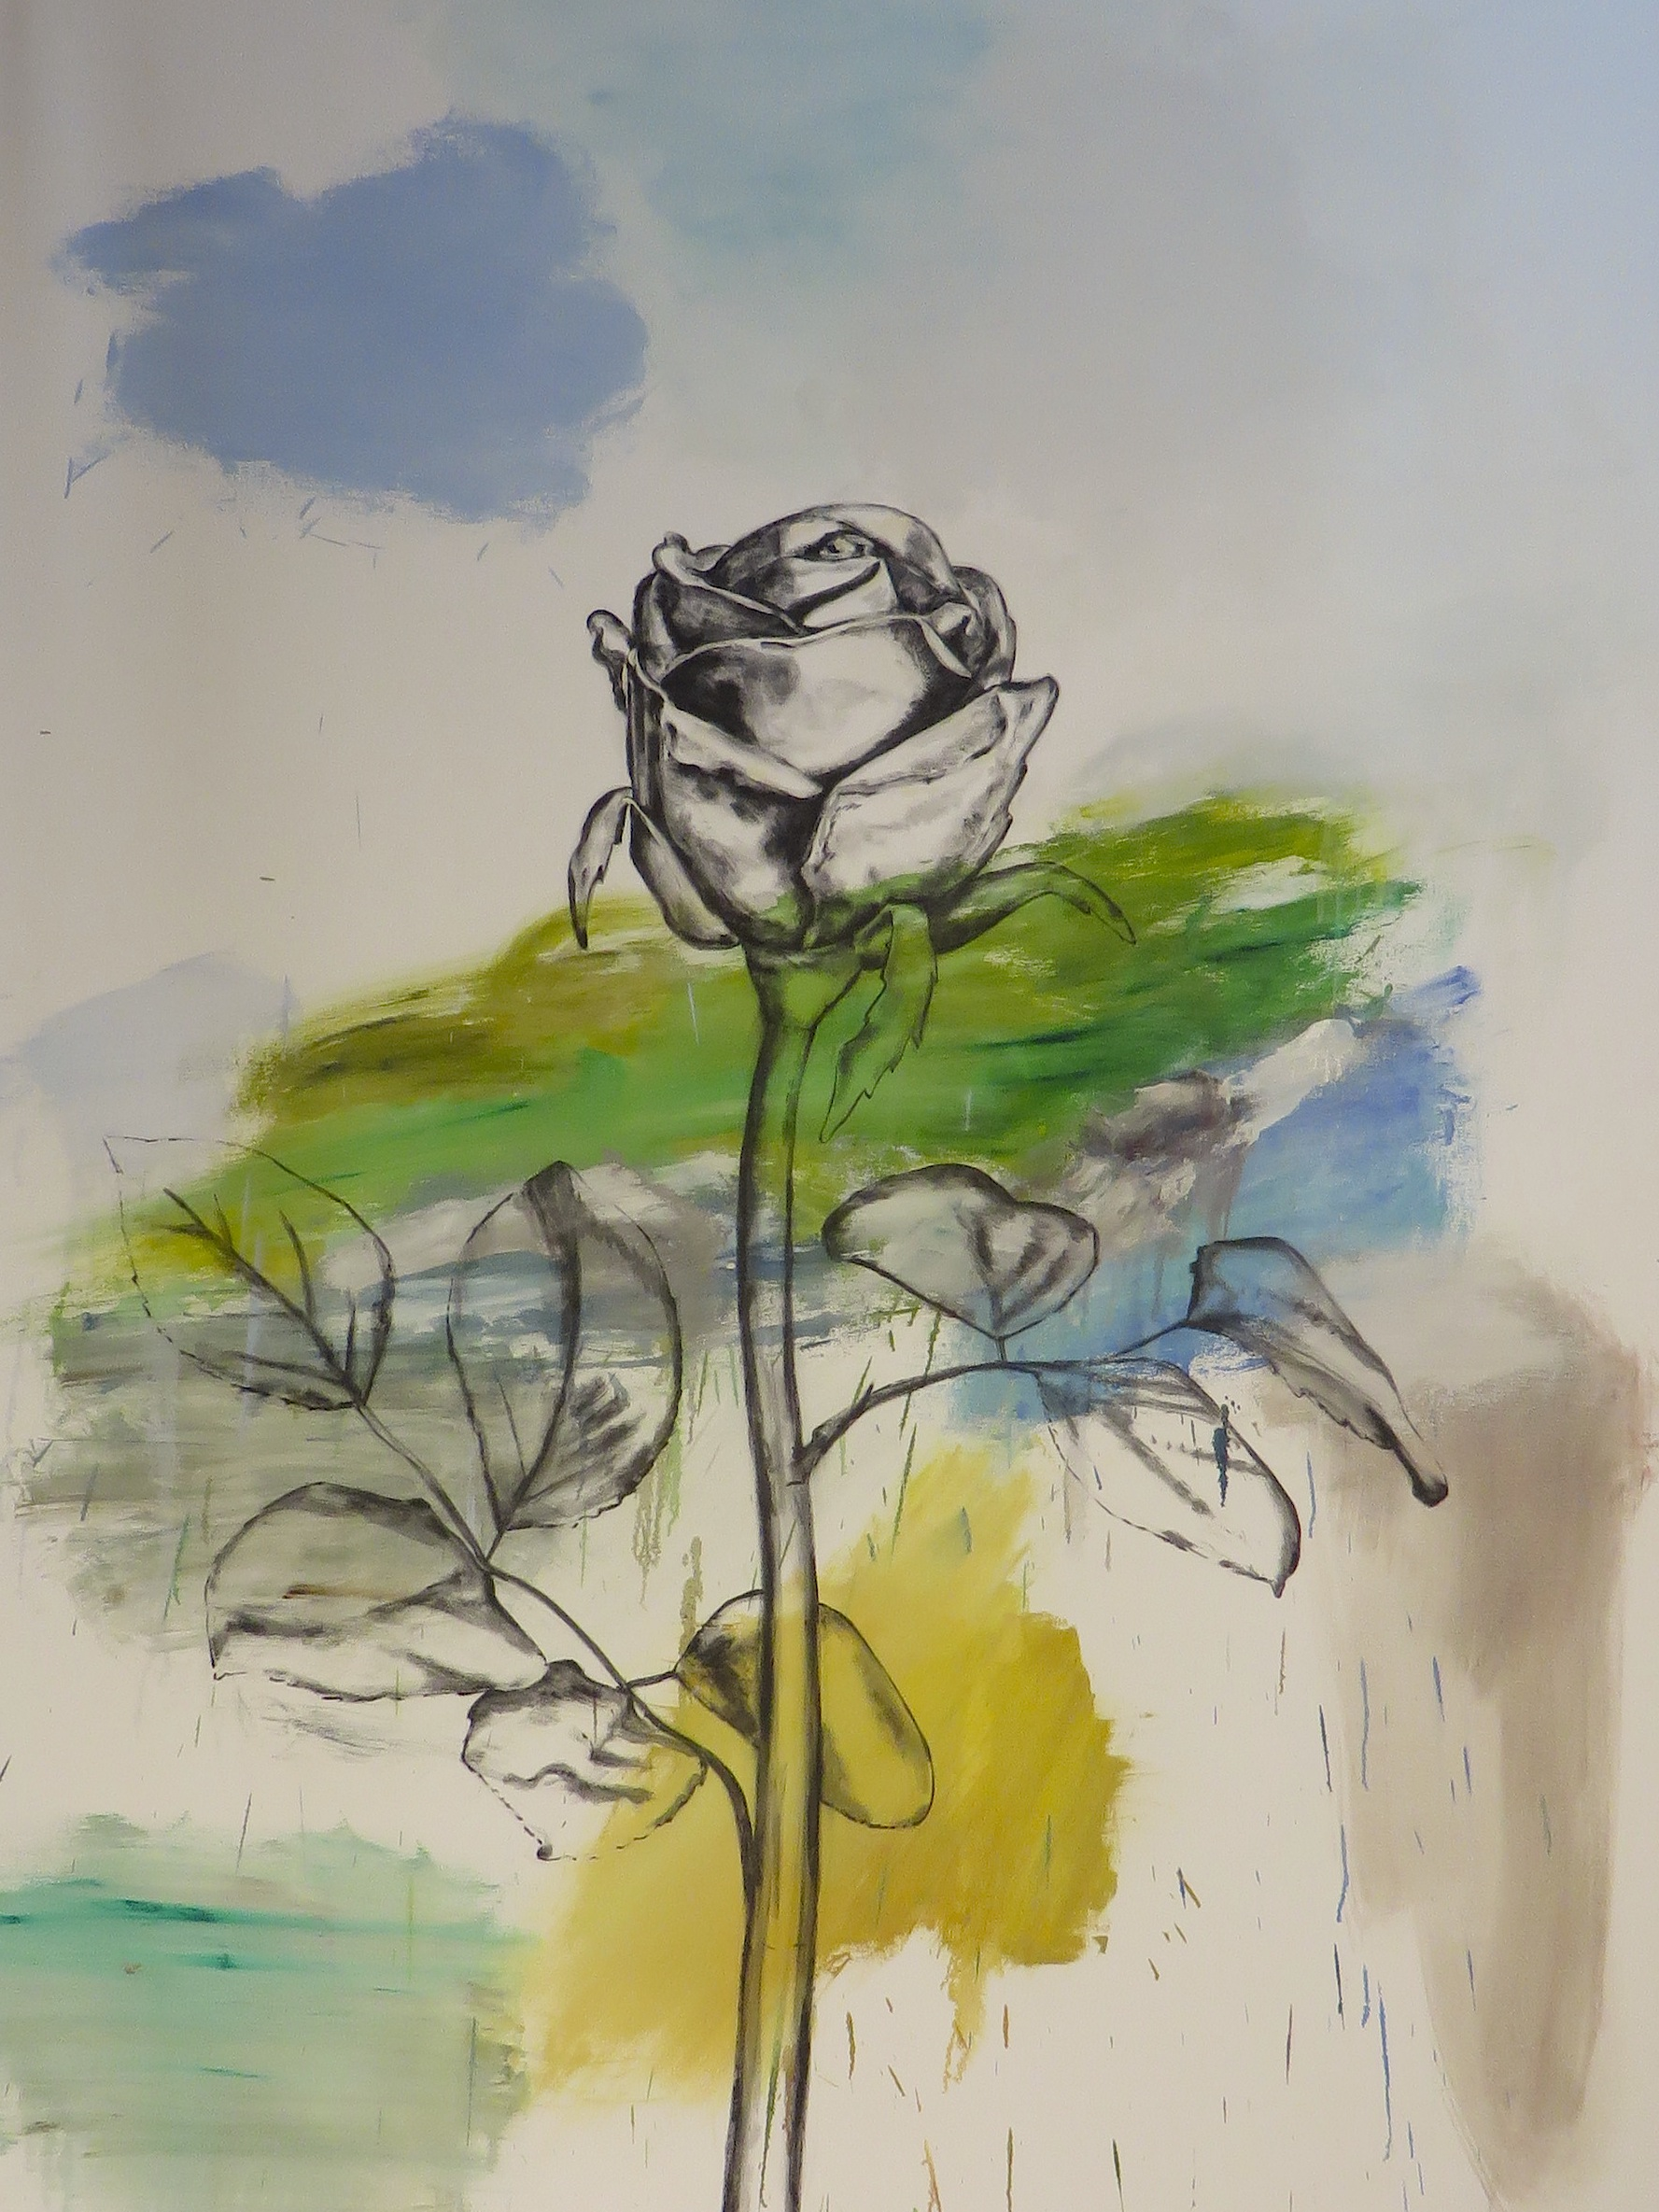 Abstract Rose, 2011, oil, canvas, 92 x 78 in, $12,000